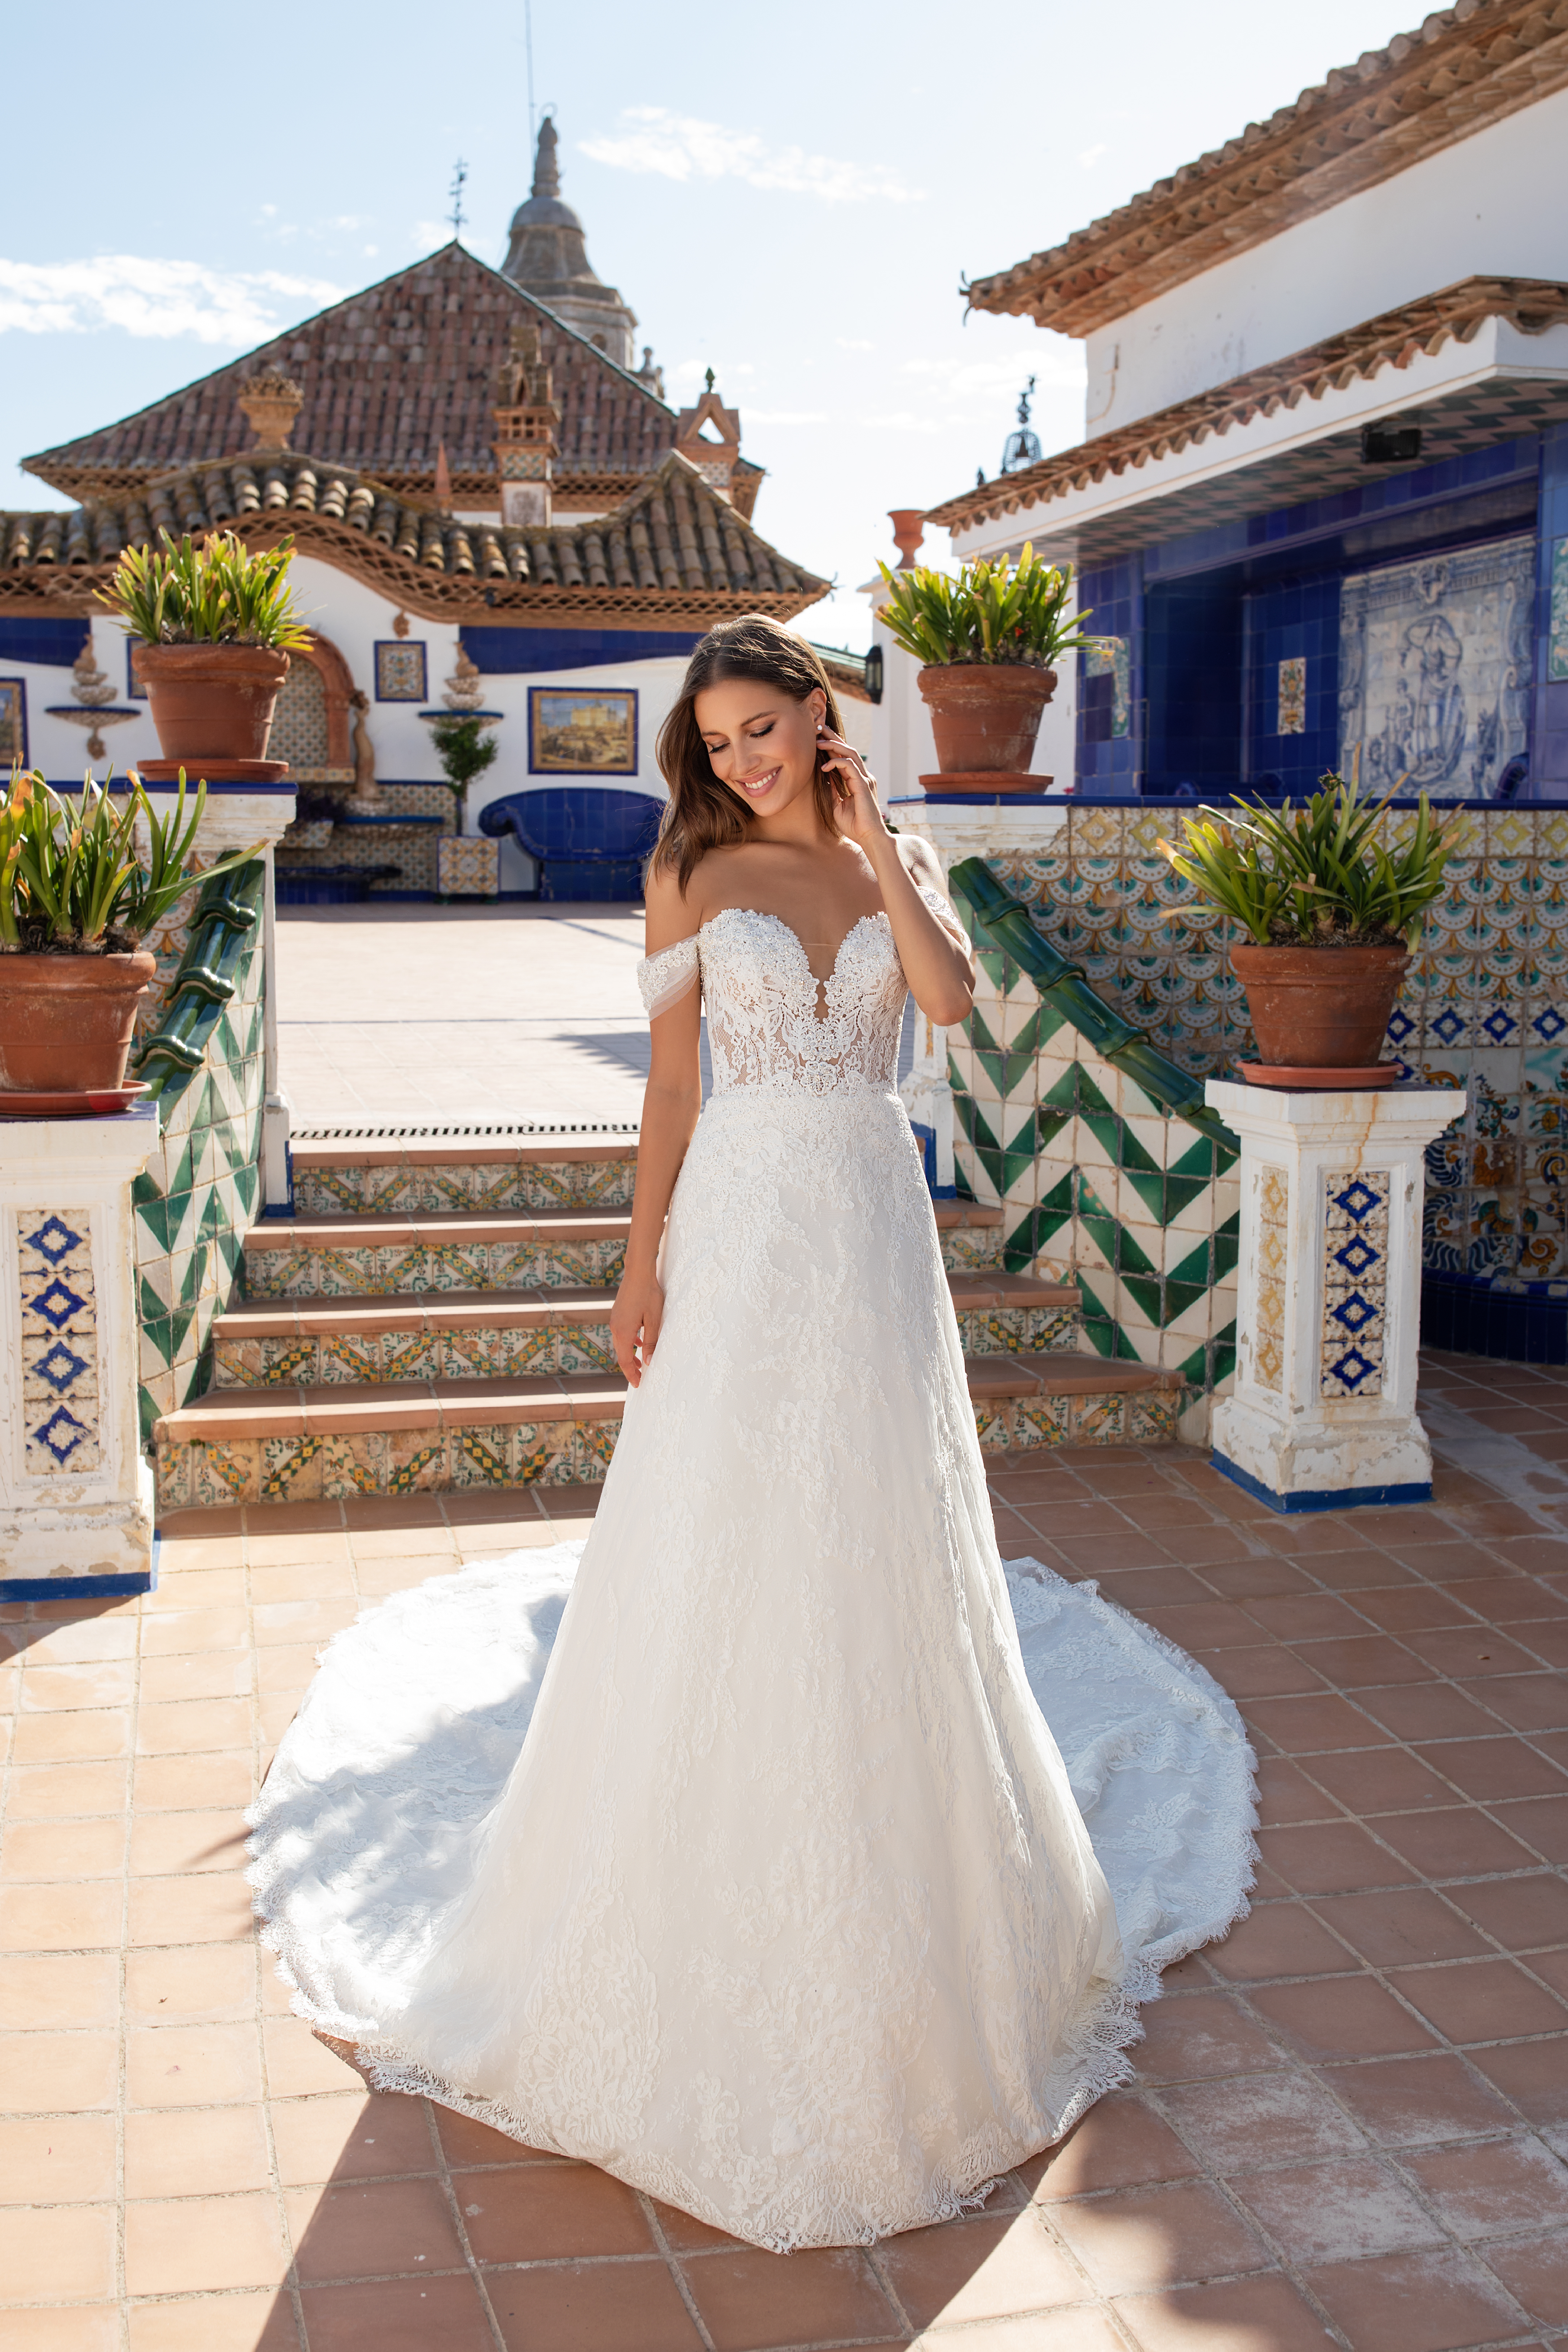 Off The Shoulder Sweetheart Neckline A Line Lace Wedding Dress With Sheer Corset Bodice Kleinfeld Bridal